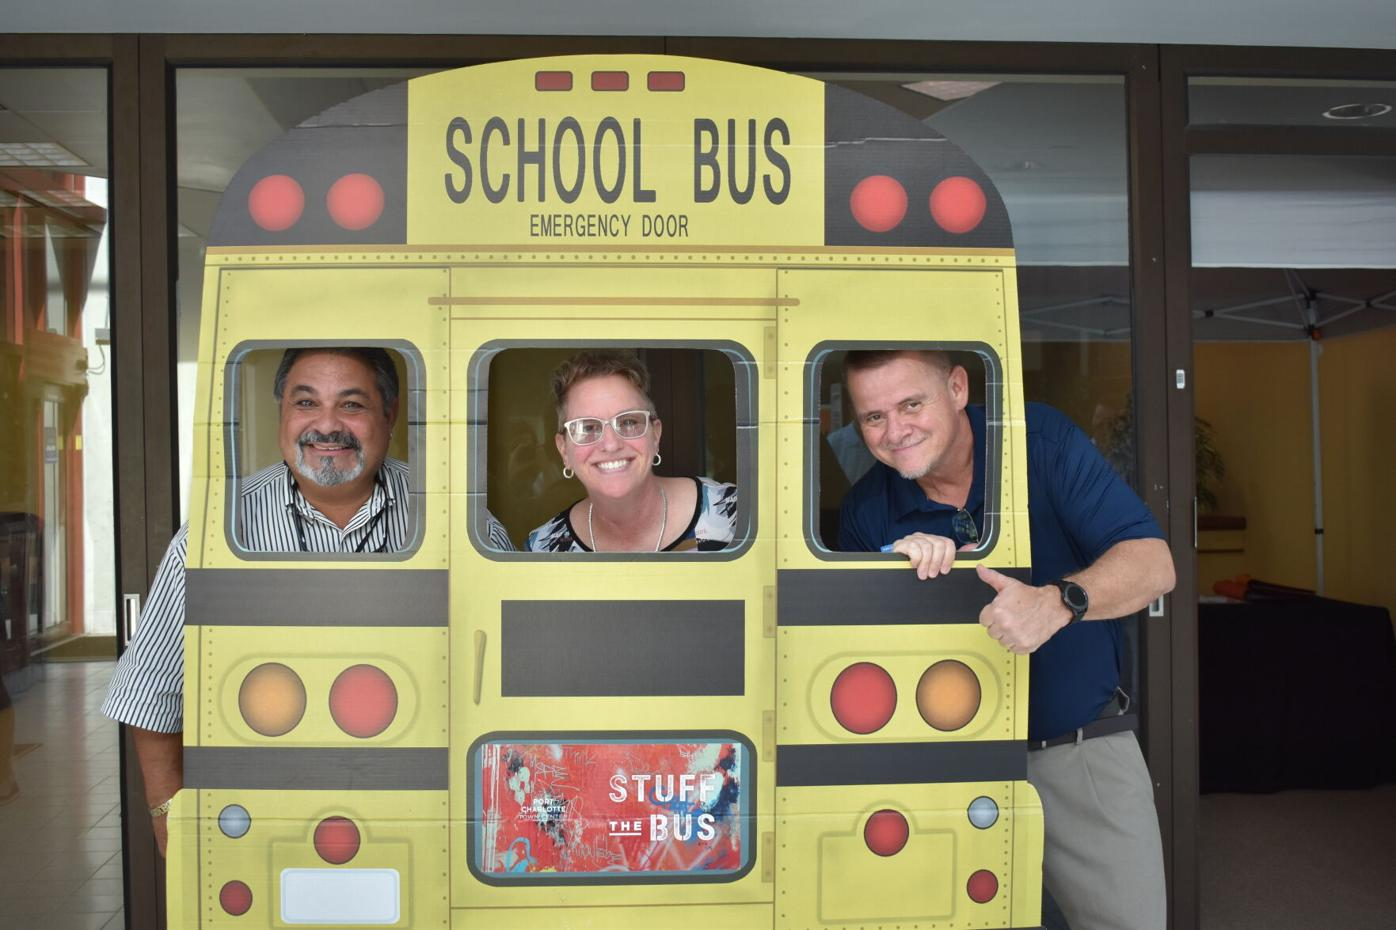 Stuff the Bus with three